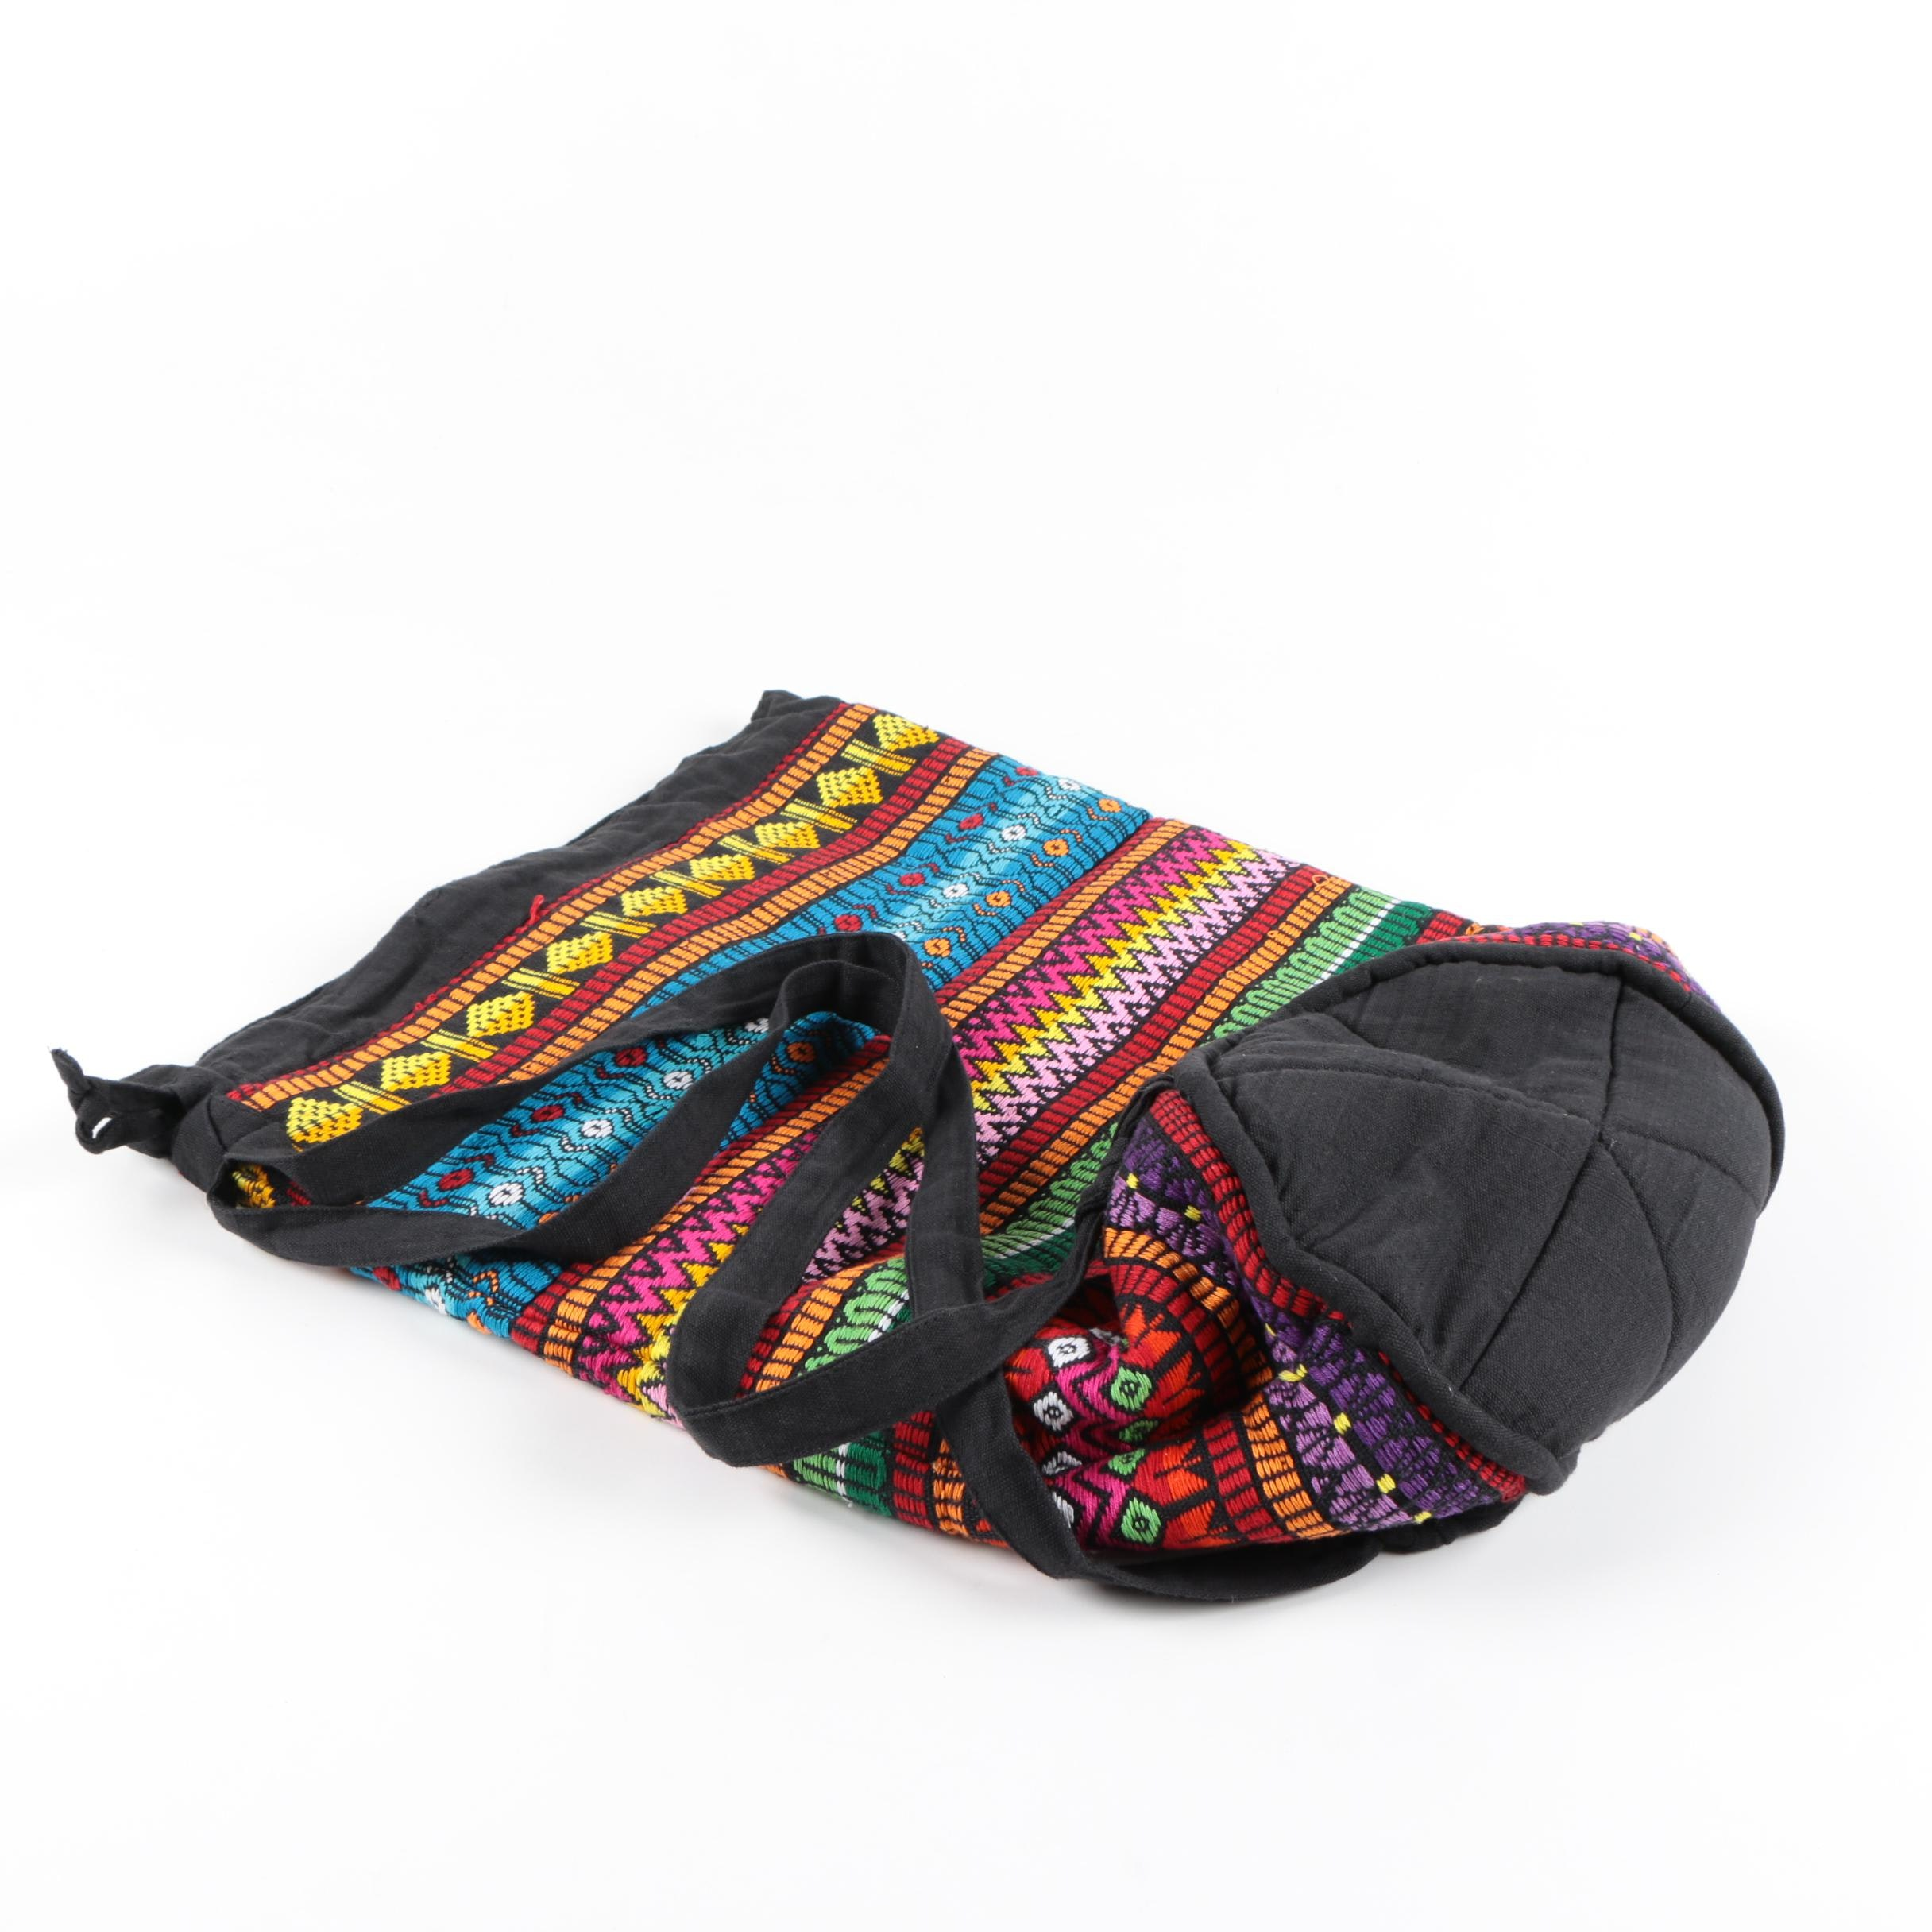 Black Canvas Bag With Colorful Woven Patterns